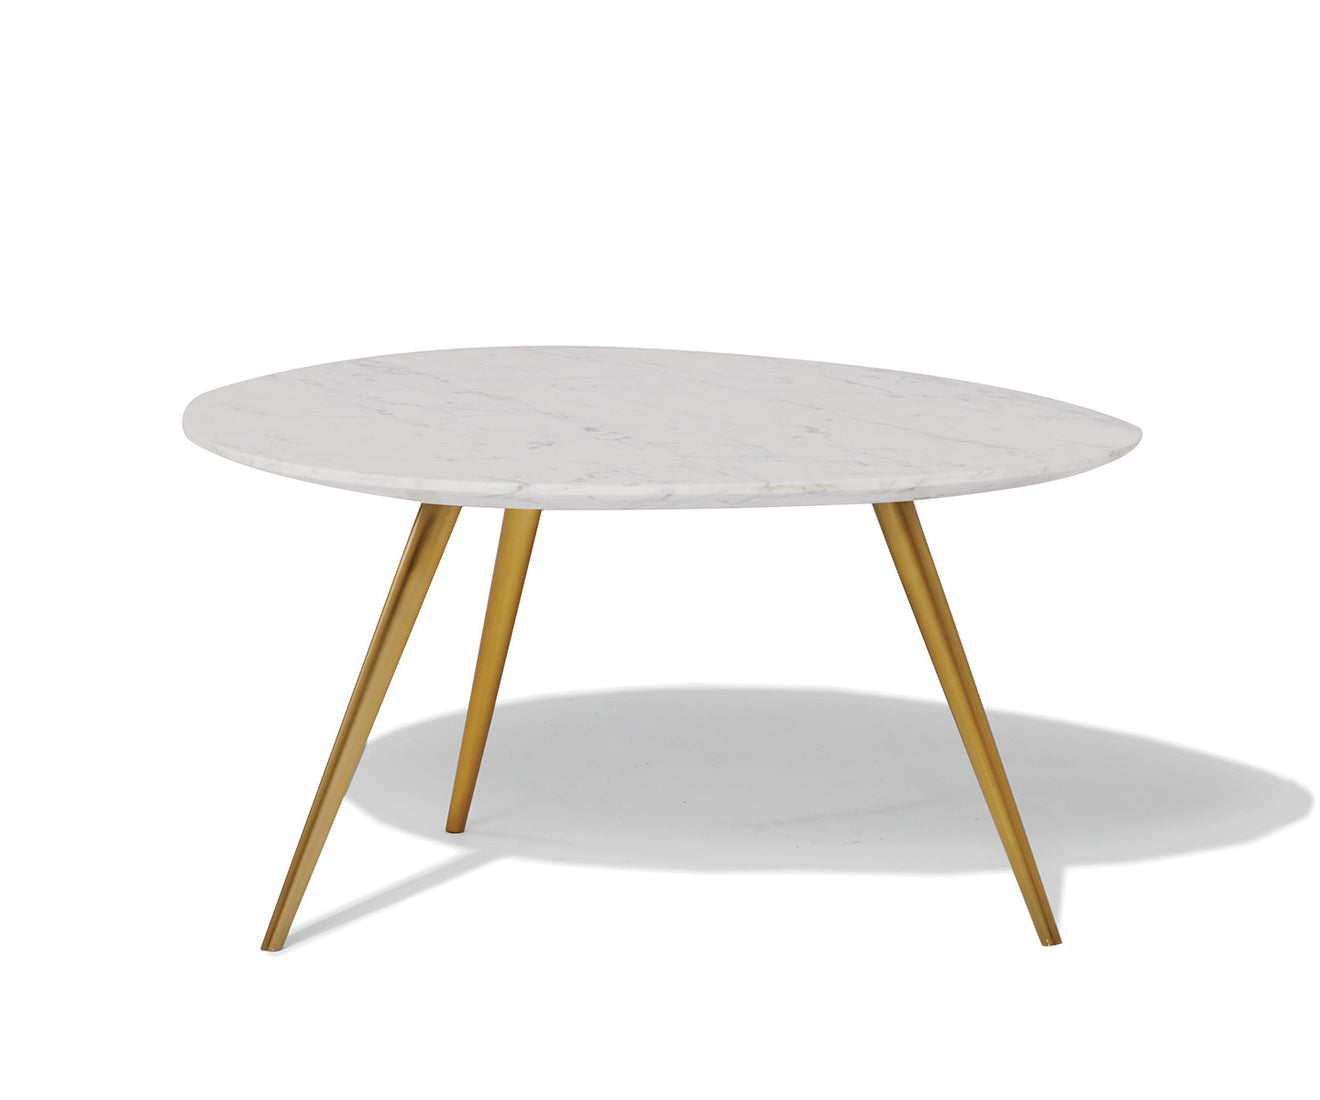 Lily pad nesting tables west elm workspace lily pad nesting tables watchthetrailerfo